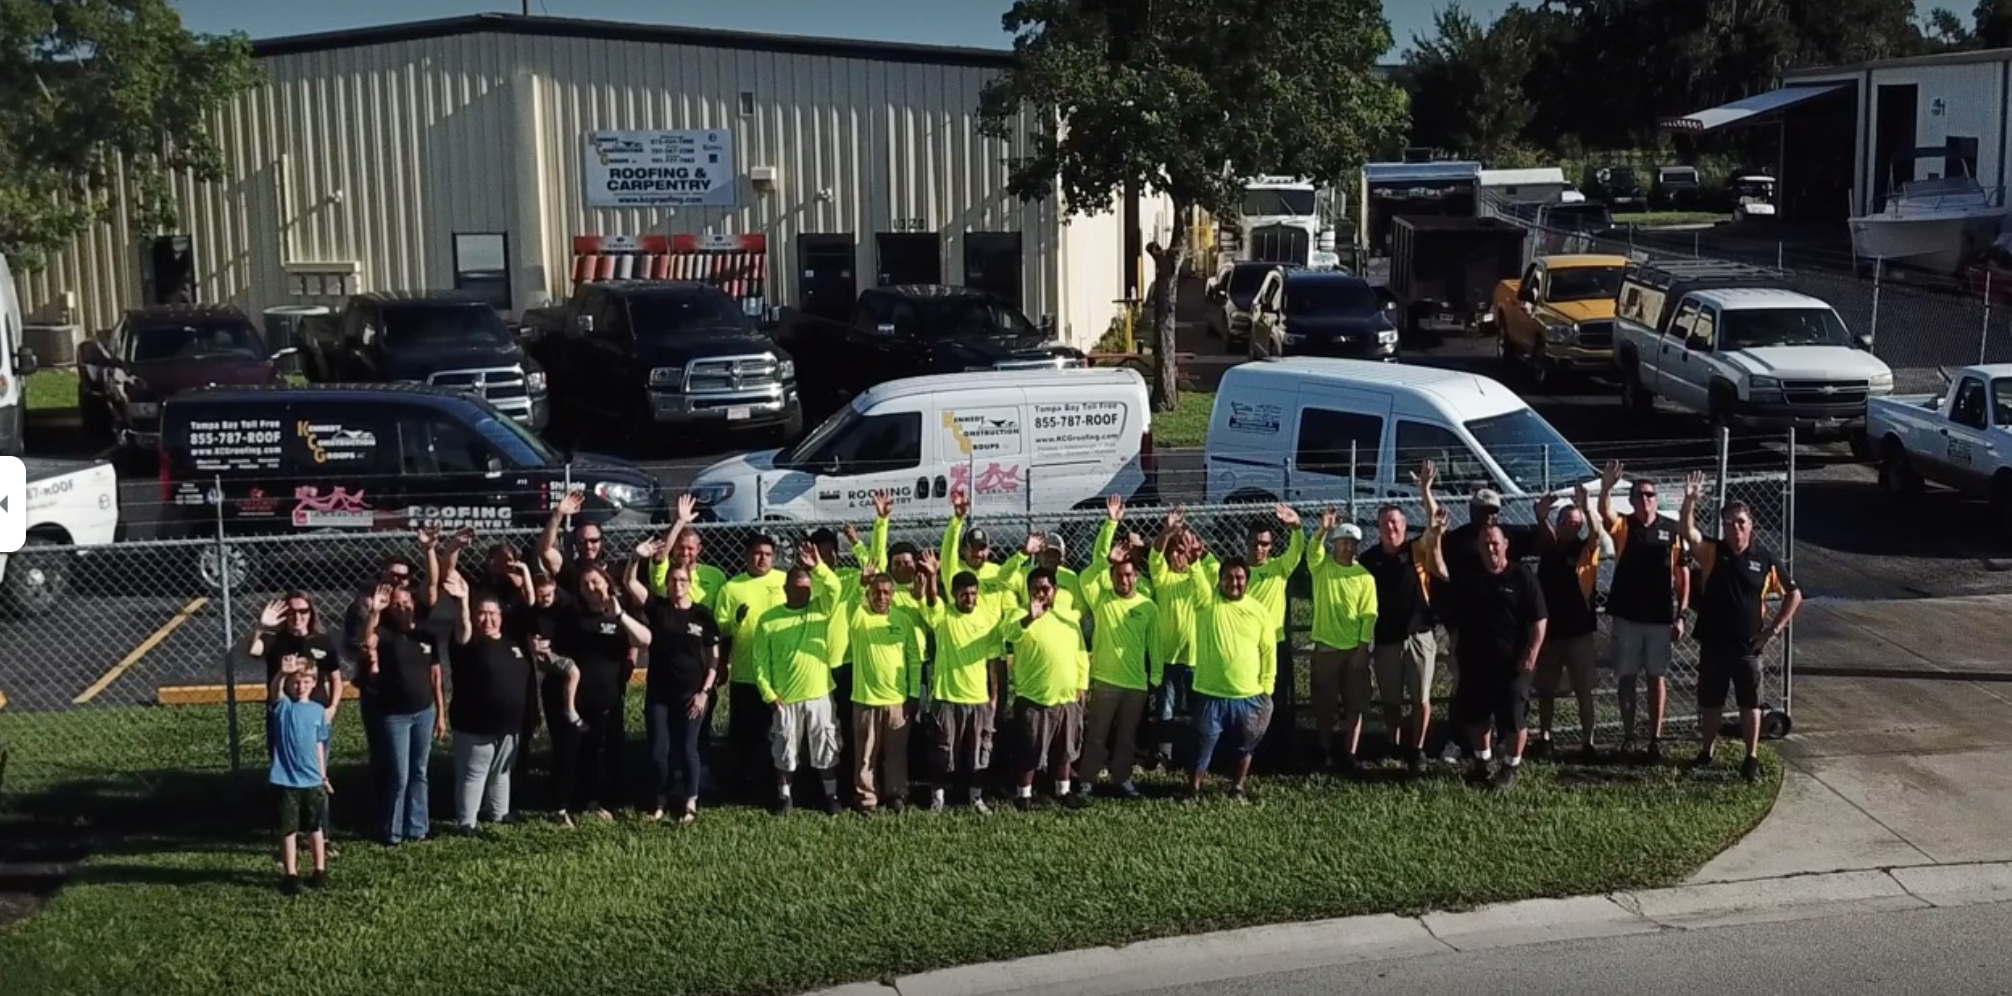 Looking for Roofing Companies in Tampa?